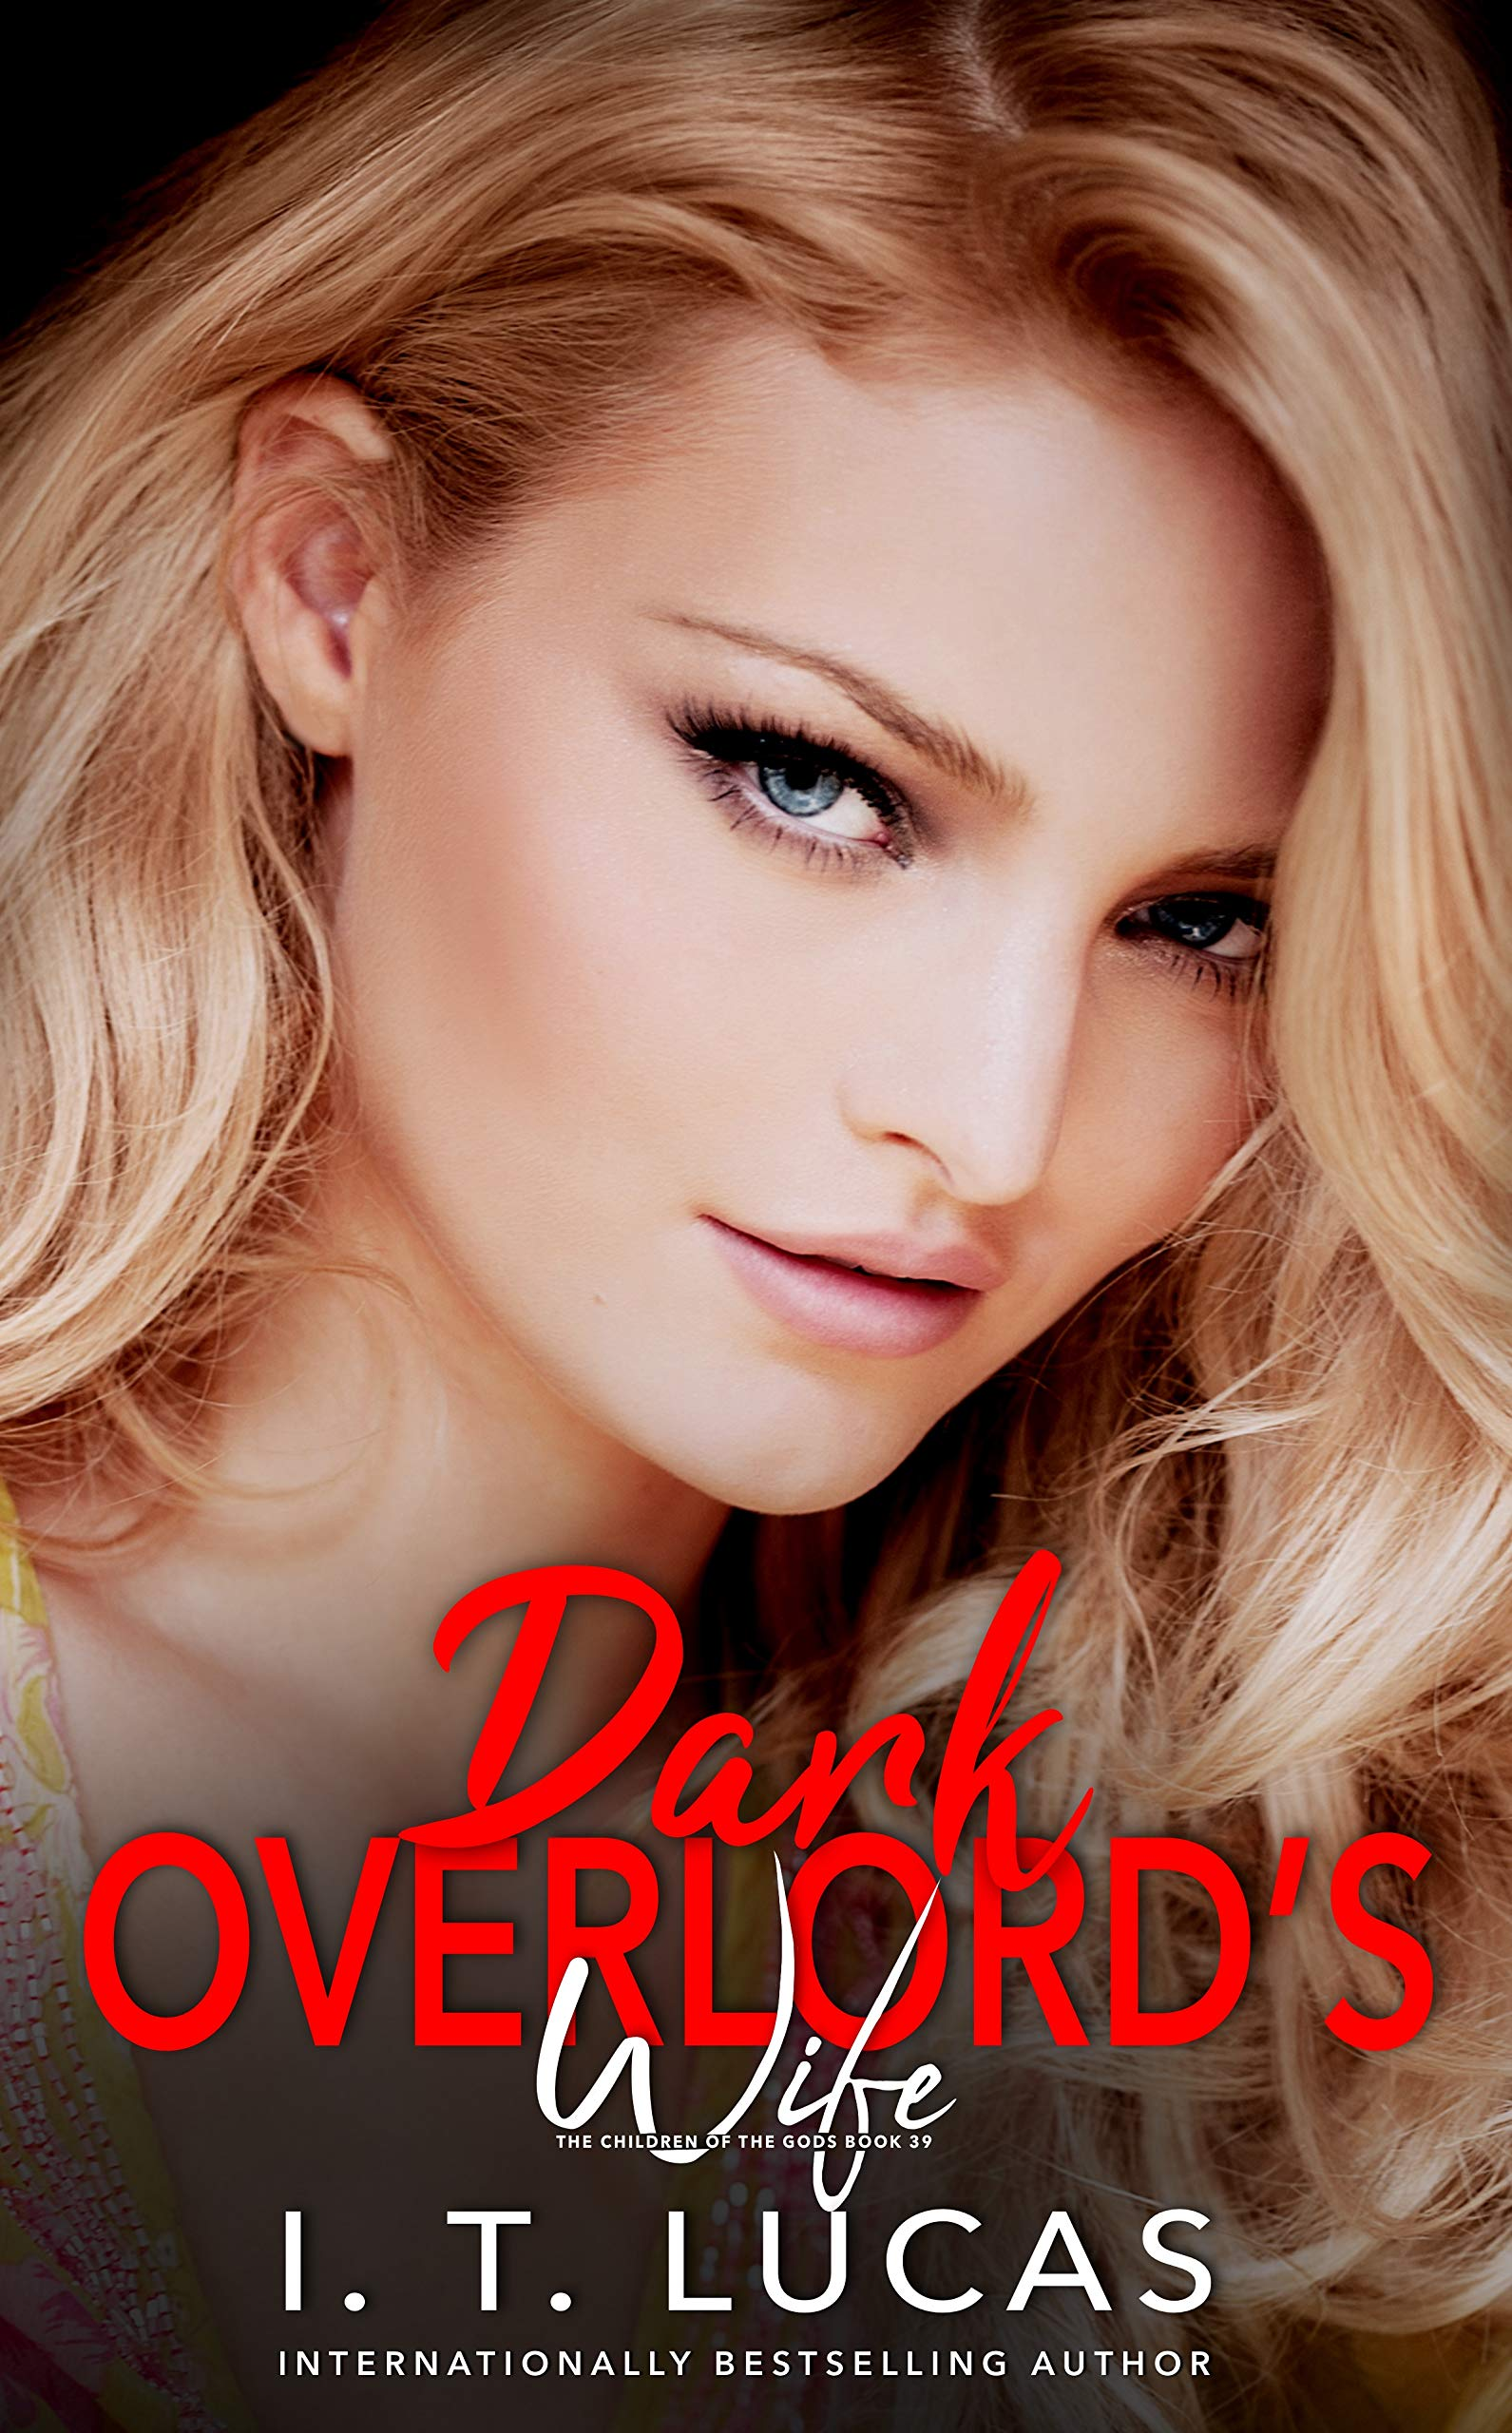 Dark Overlord's Wife (The Children Of The Gods Paranormal Romance Book 39)